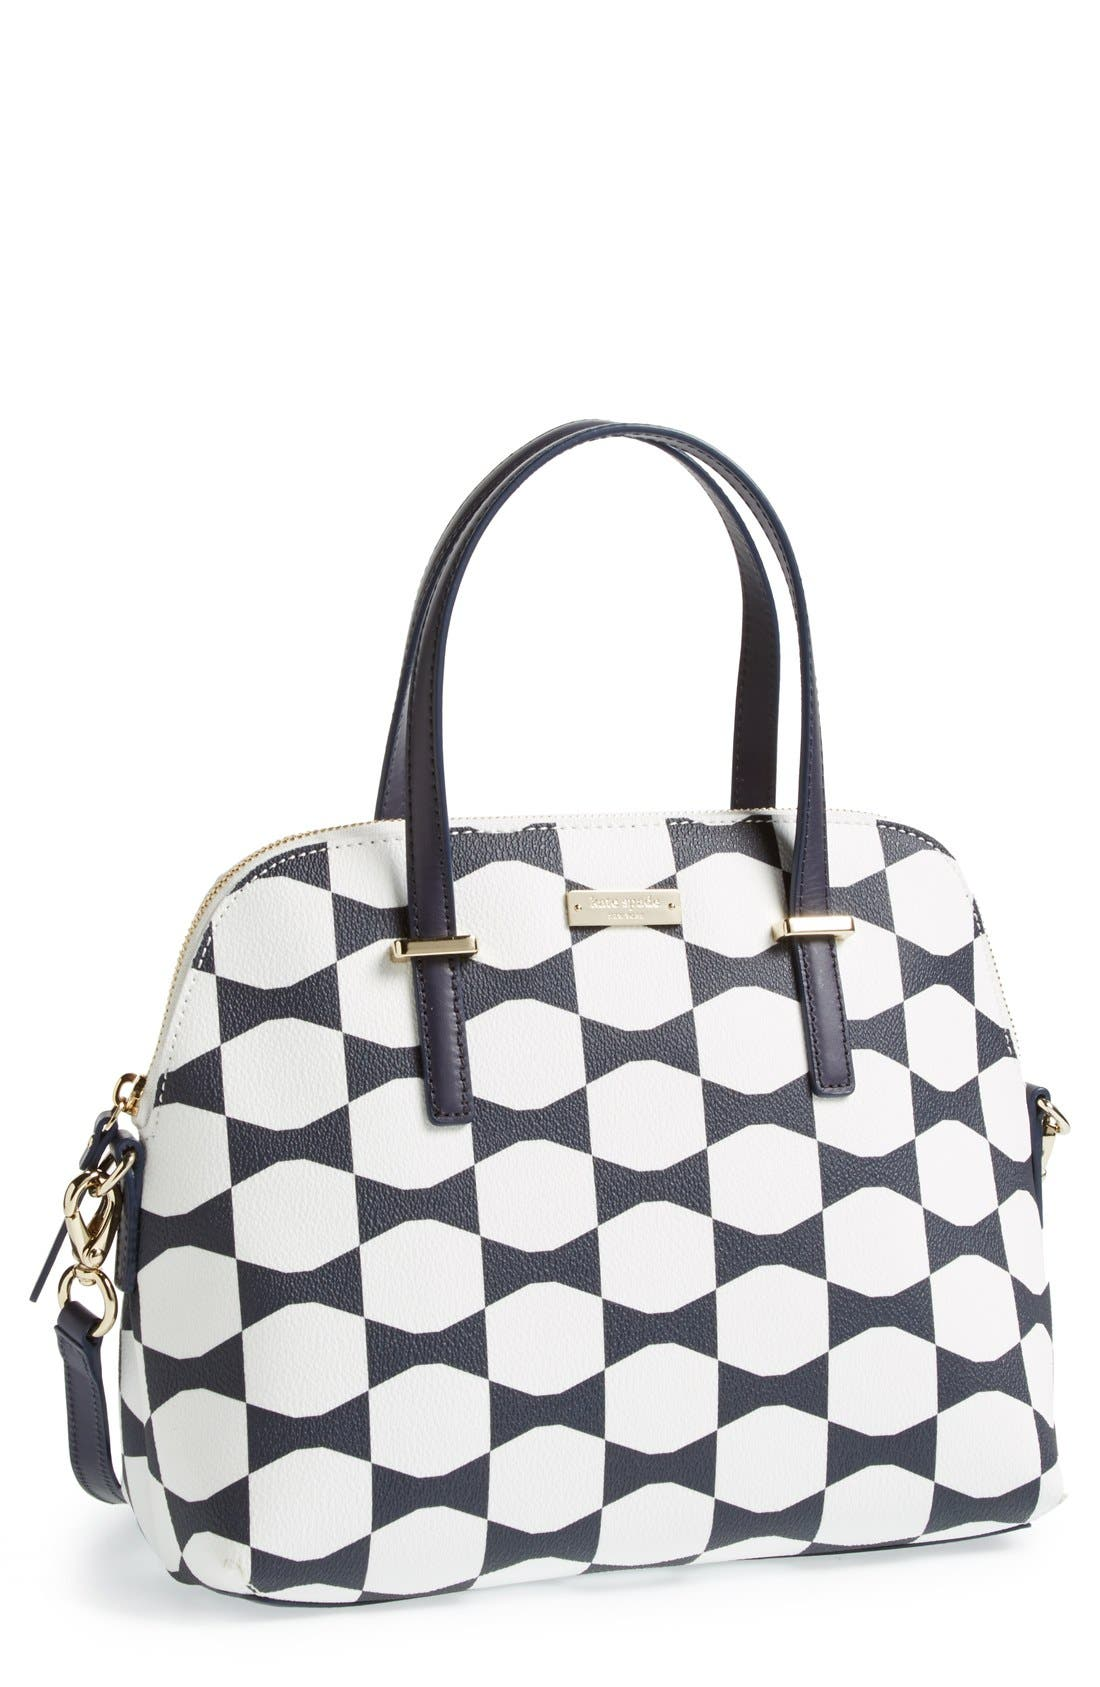 Alternate Image 1 Selected - kate spade new york 'maise - bow tile' satchel